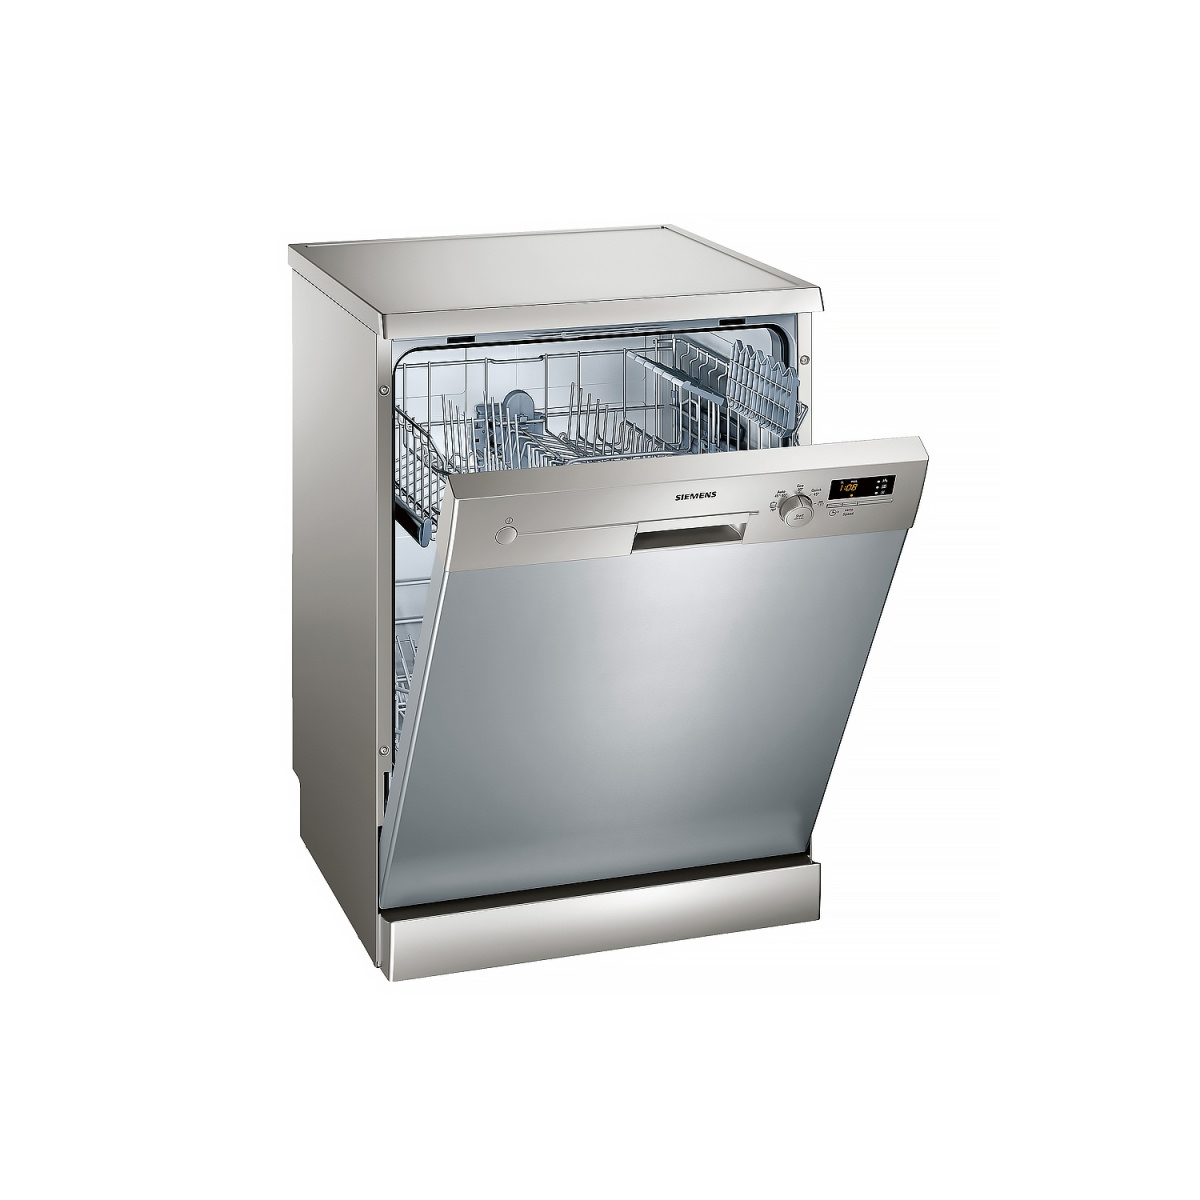 SIEMENS IQ300 SN25D800GC DISHWASHER (12 PLACE SETTINGS, SILVER INOX)